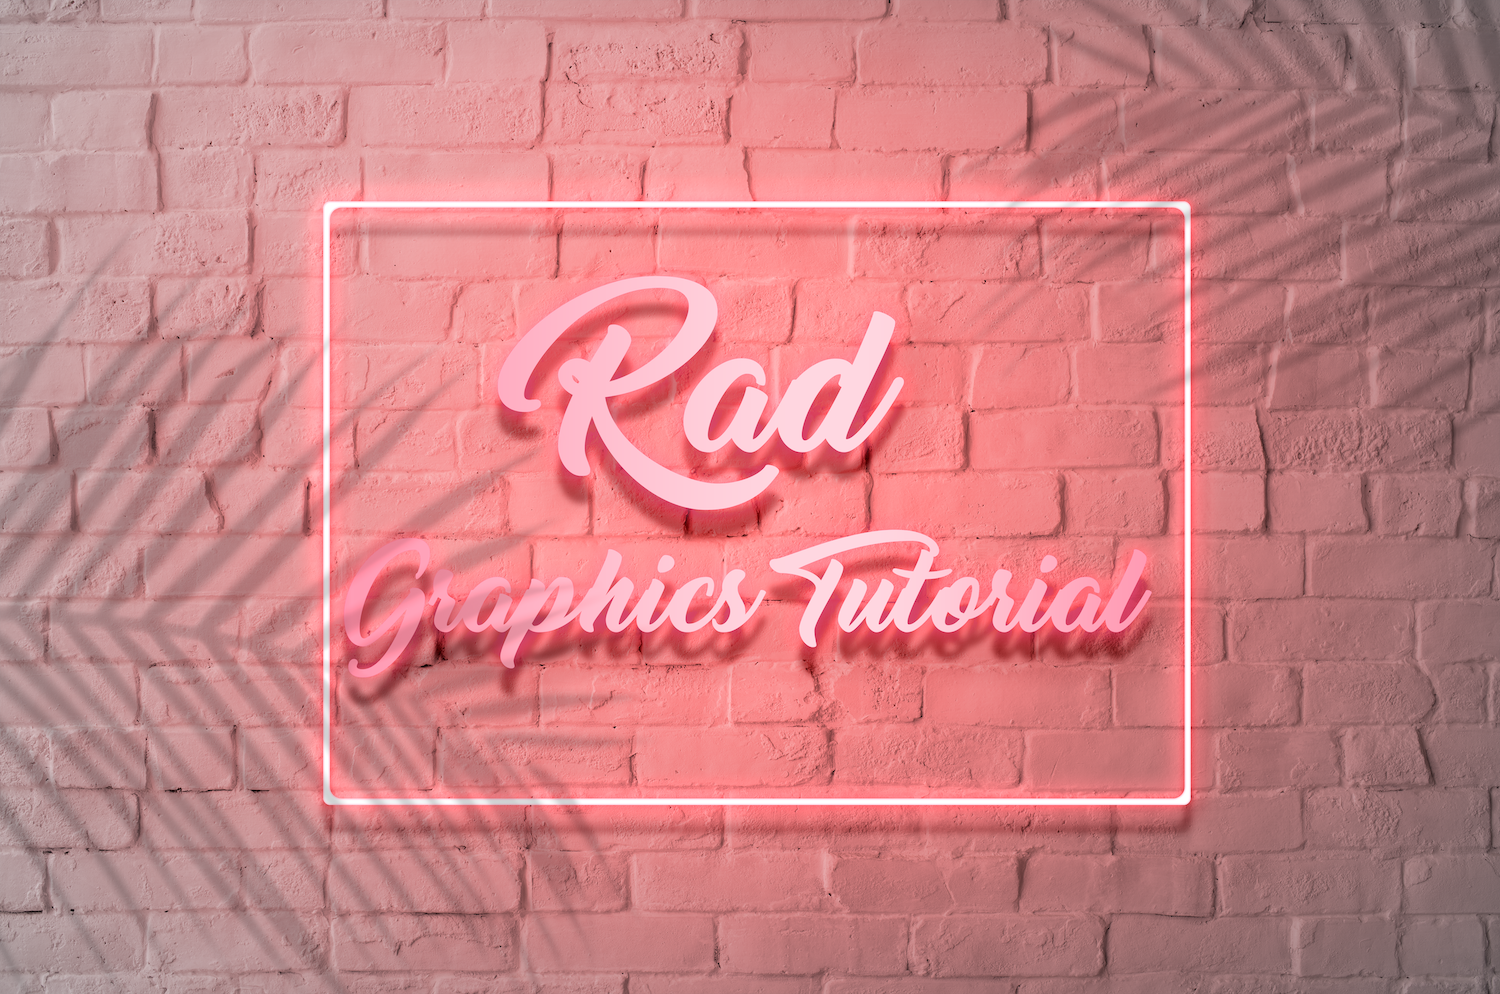 Rad Graphics Tutorial Neon Sign with Palm Tree Shadows